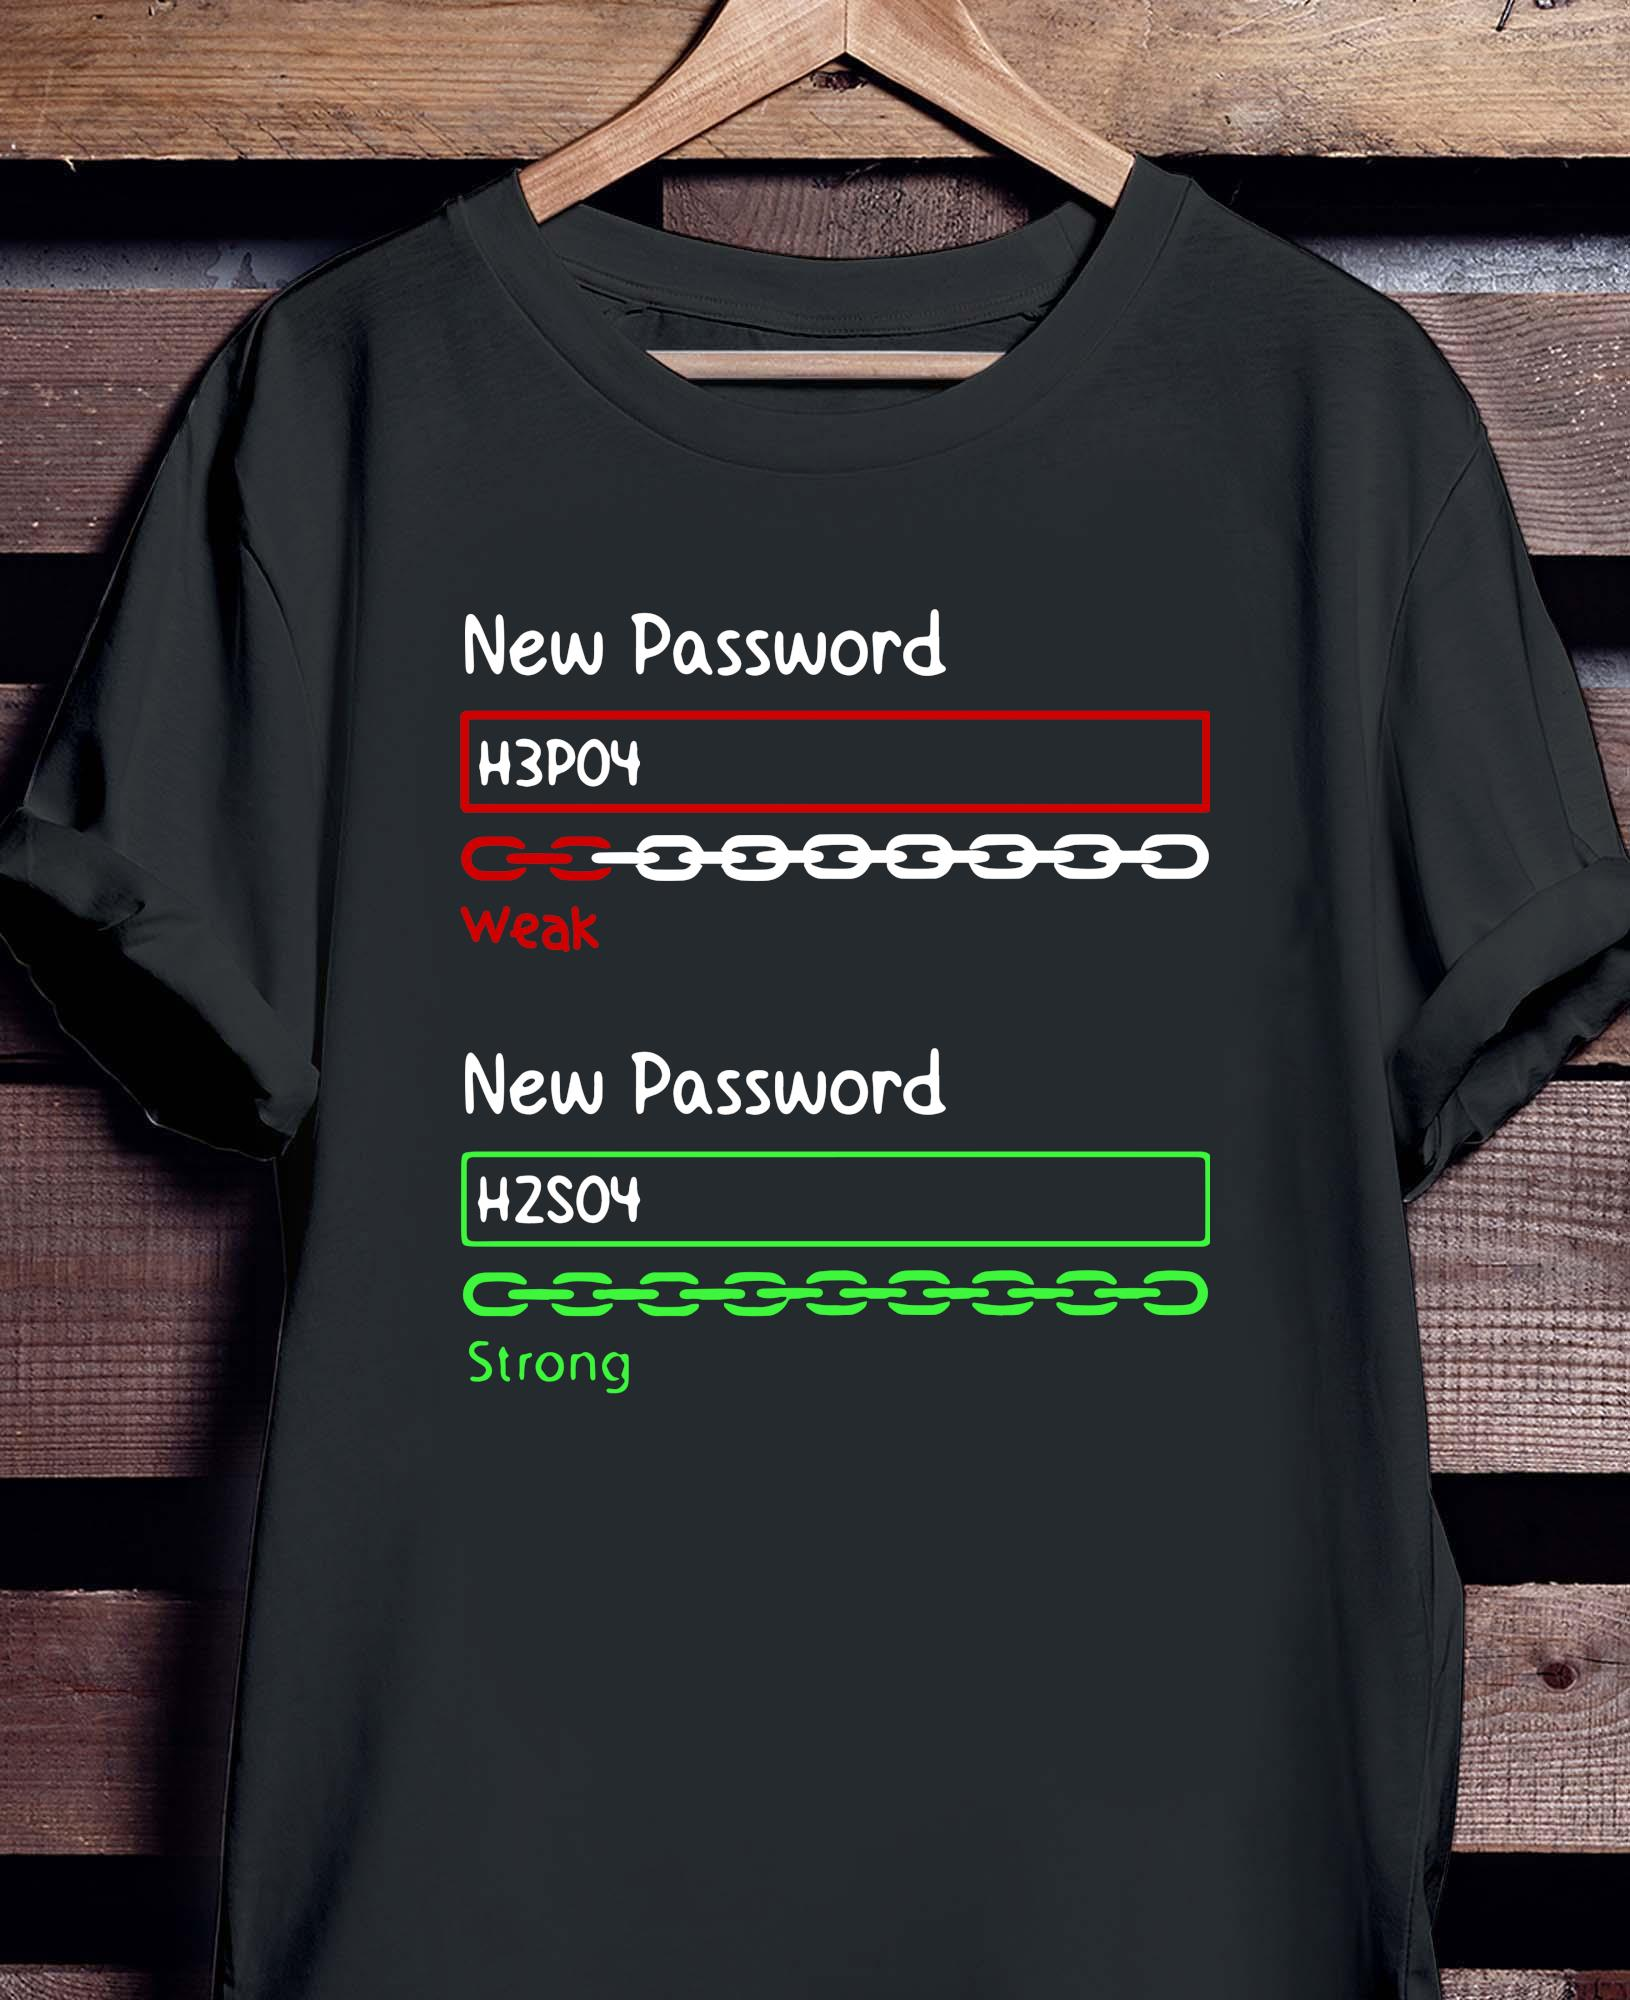 New Password H3PO4 Weak New Password H2SO4 Strong Shirt